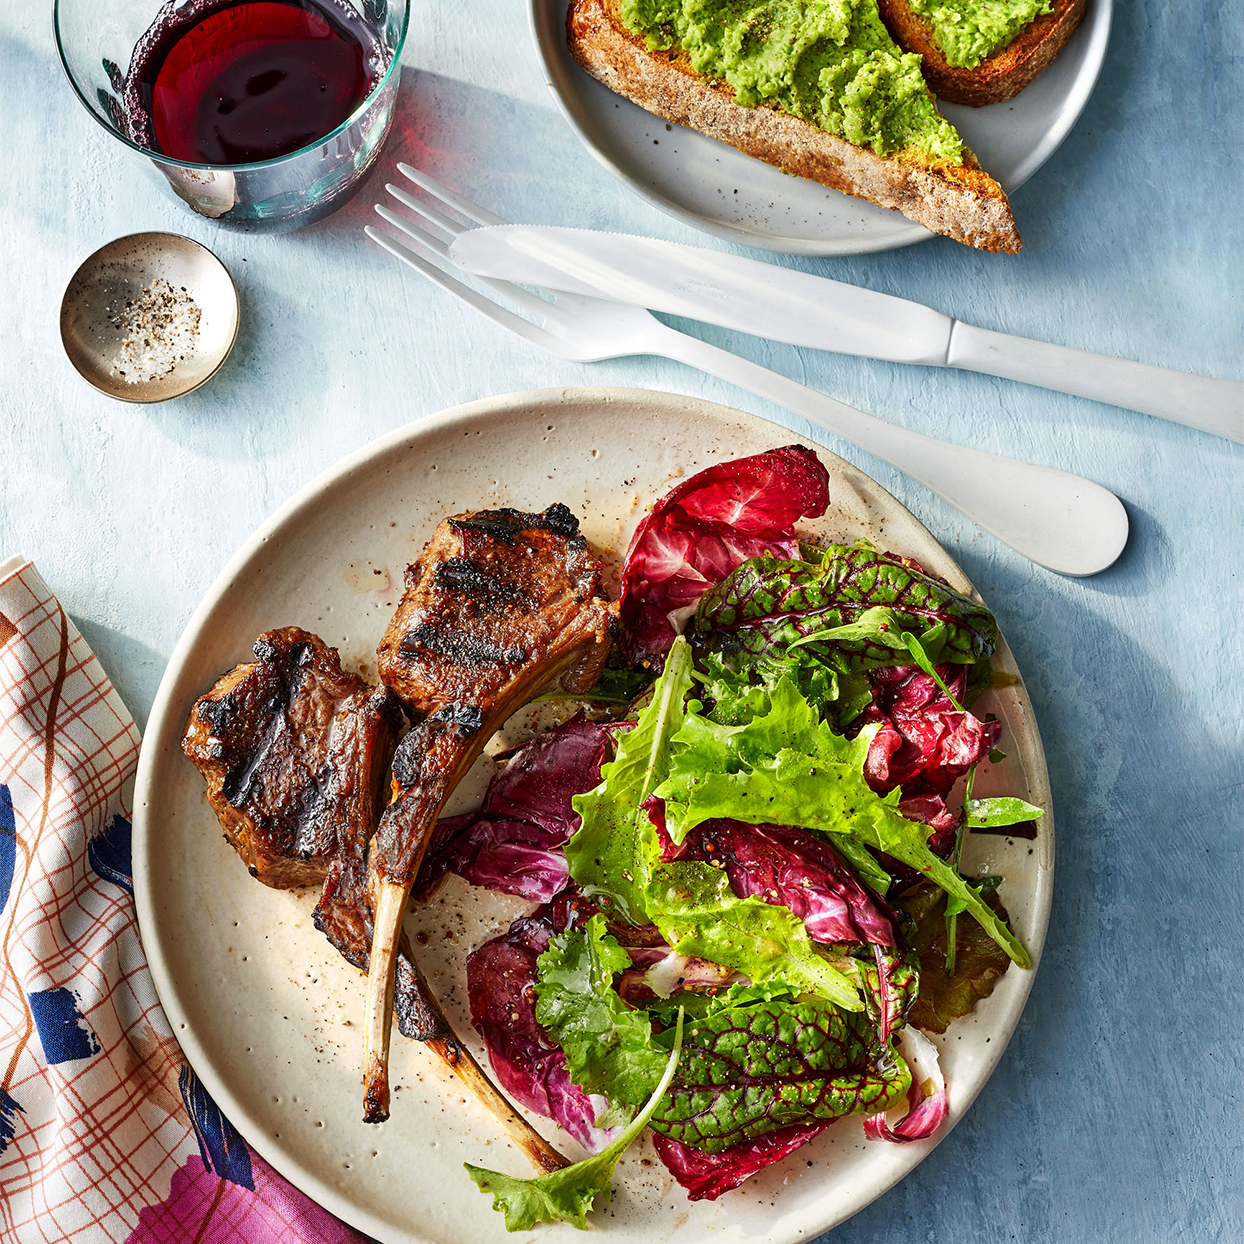 Lamb Chops With Mashed Peas on Toast on neutral plates with silverware glass and napkin